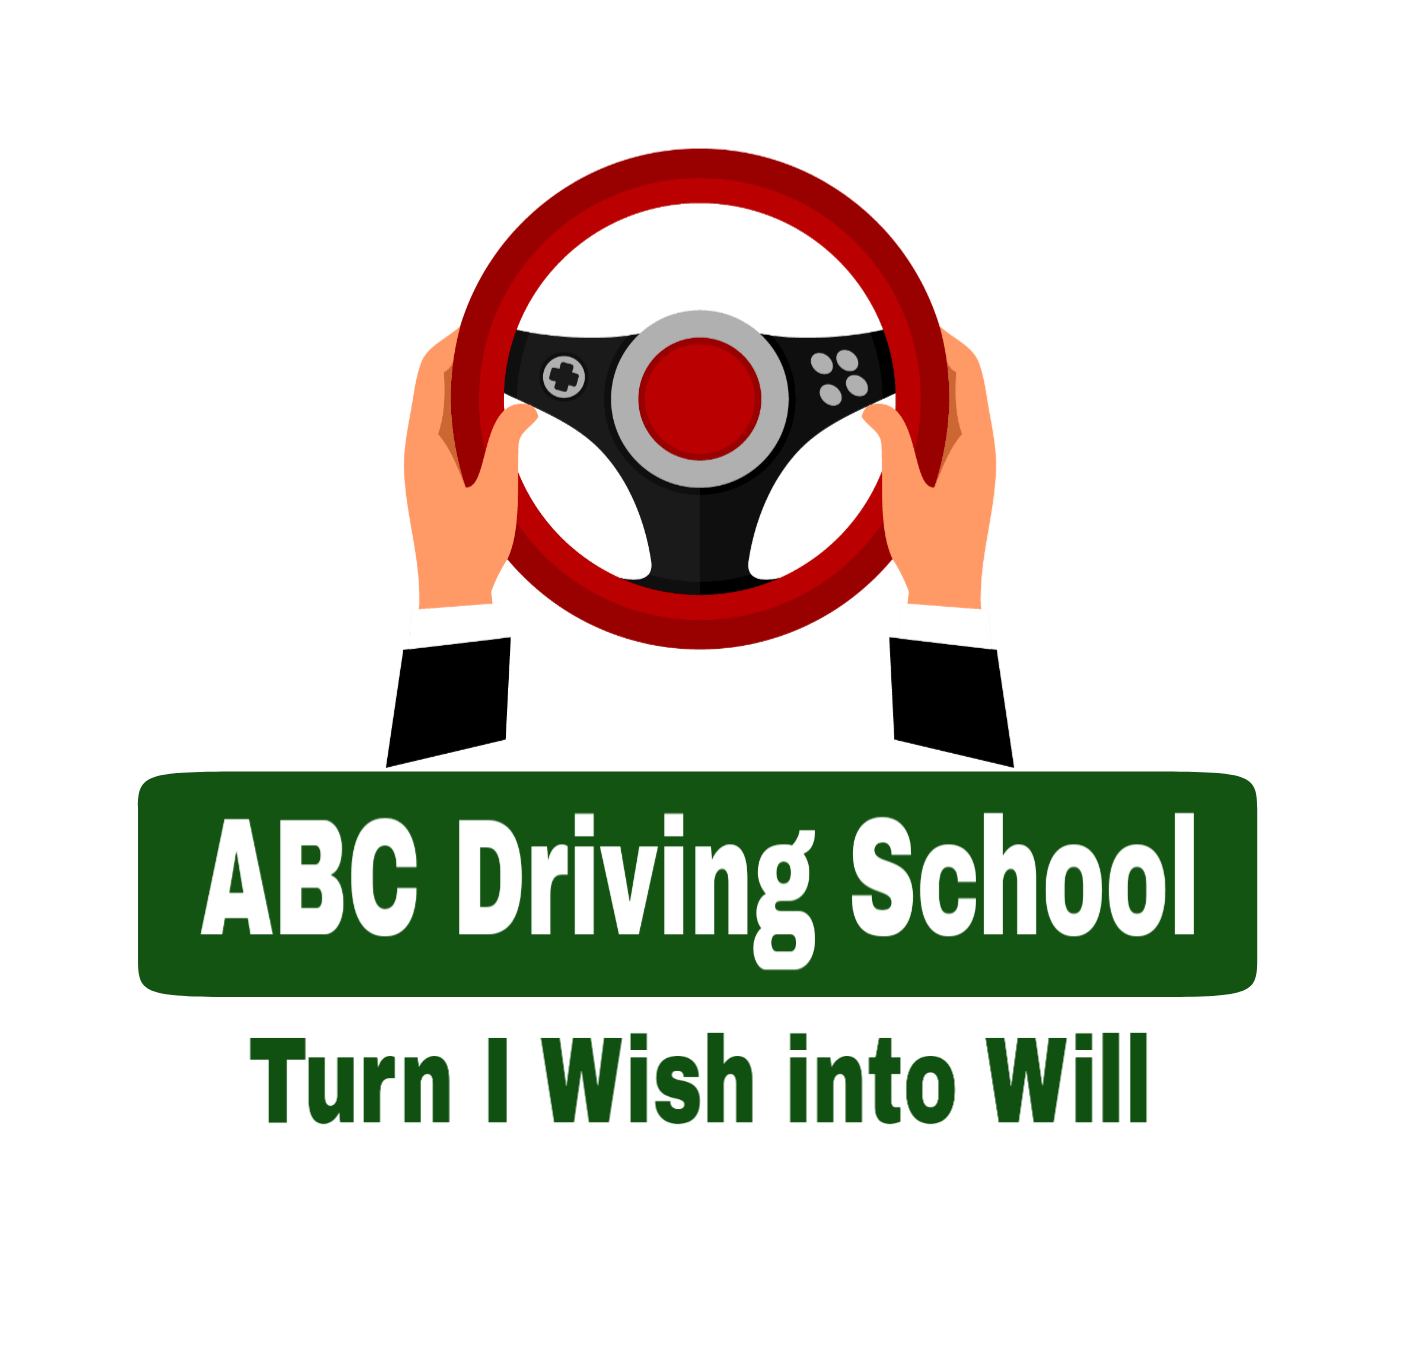 ABC driving school, Virginia